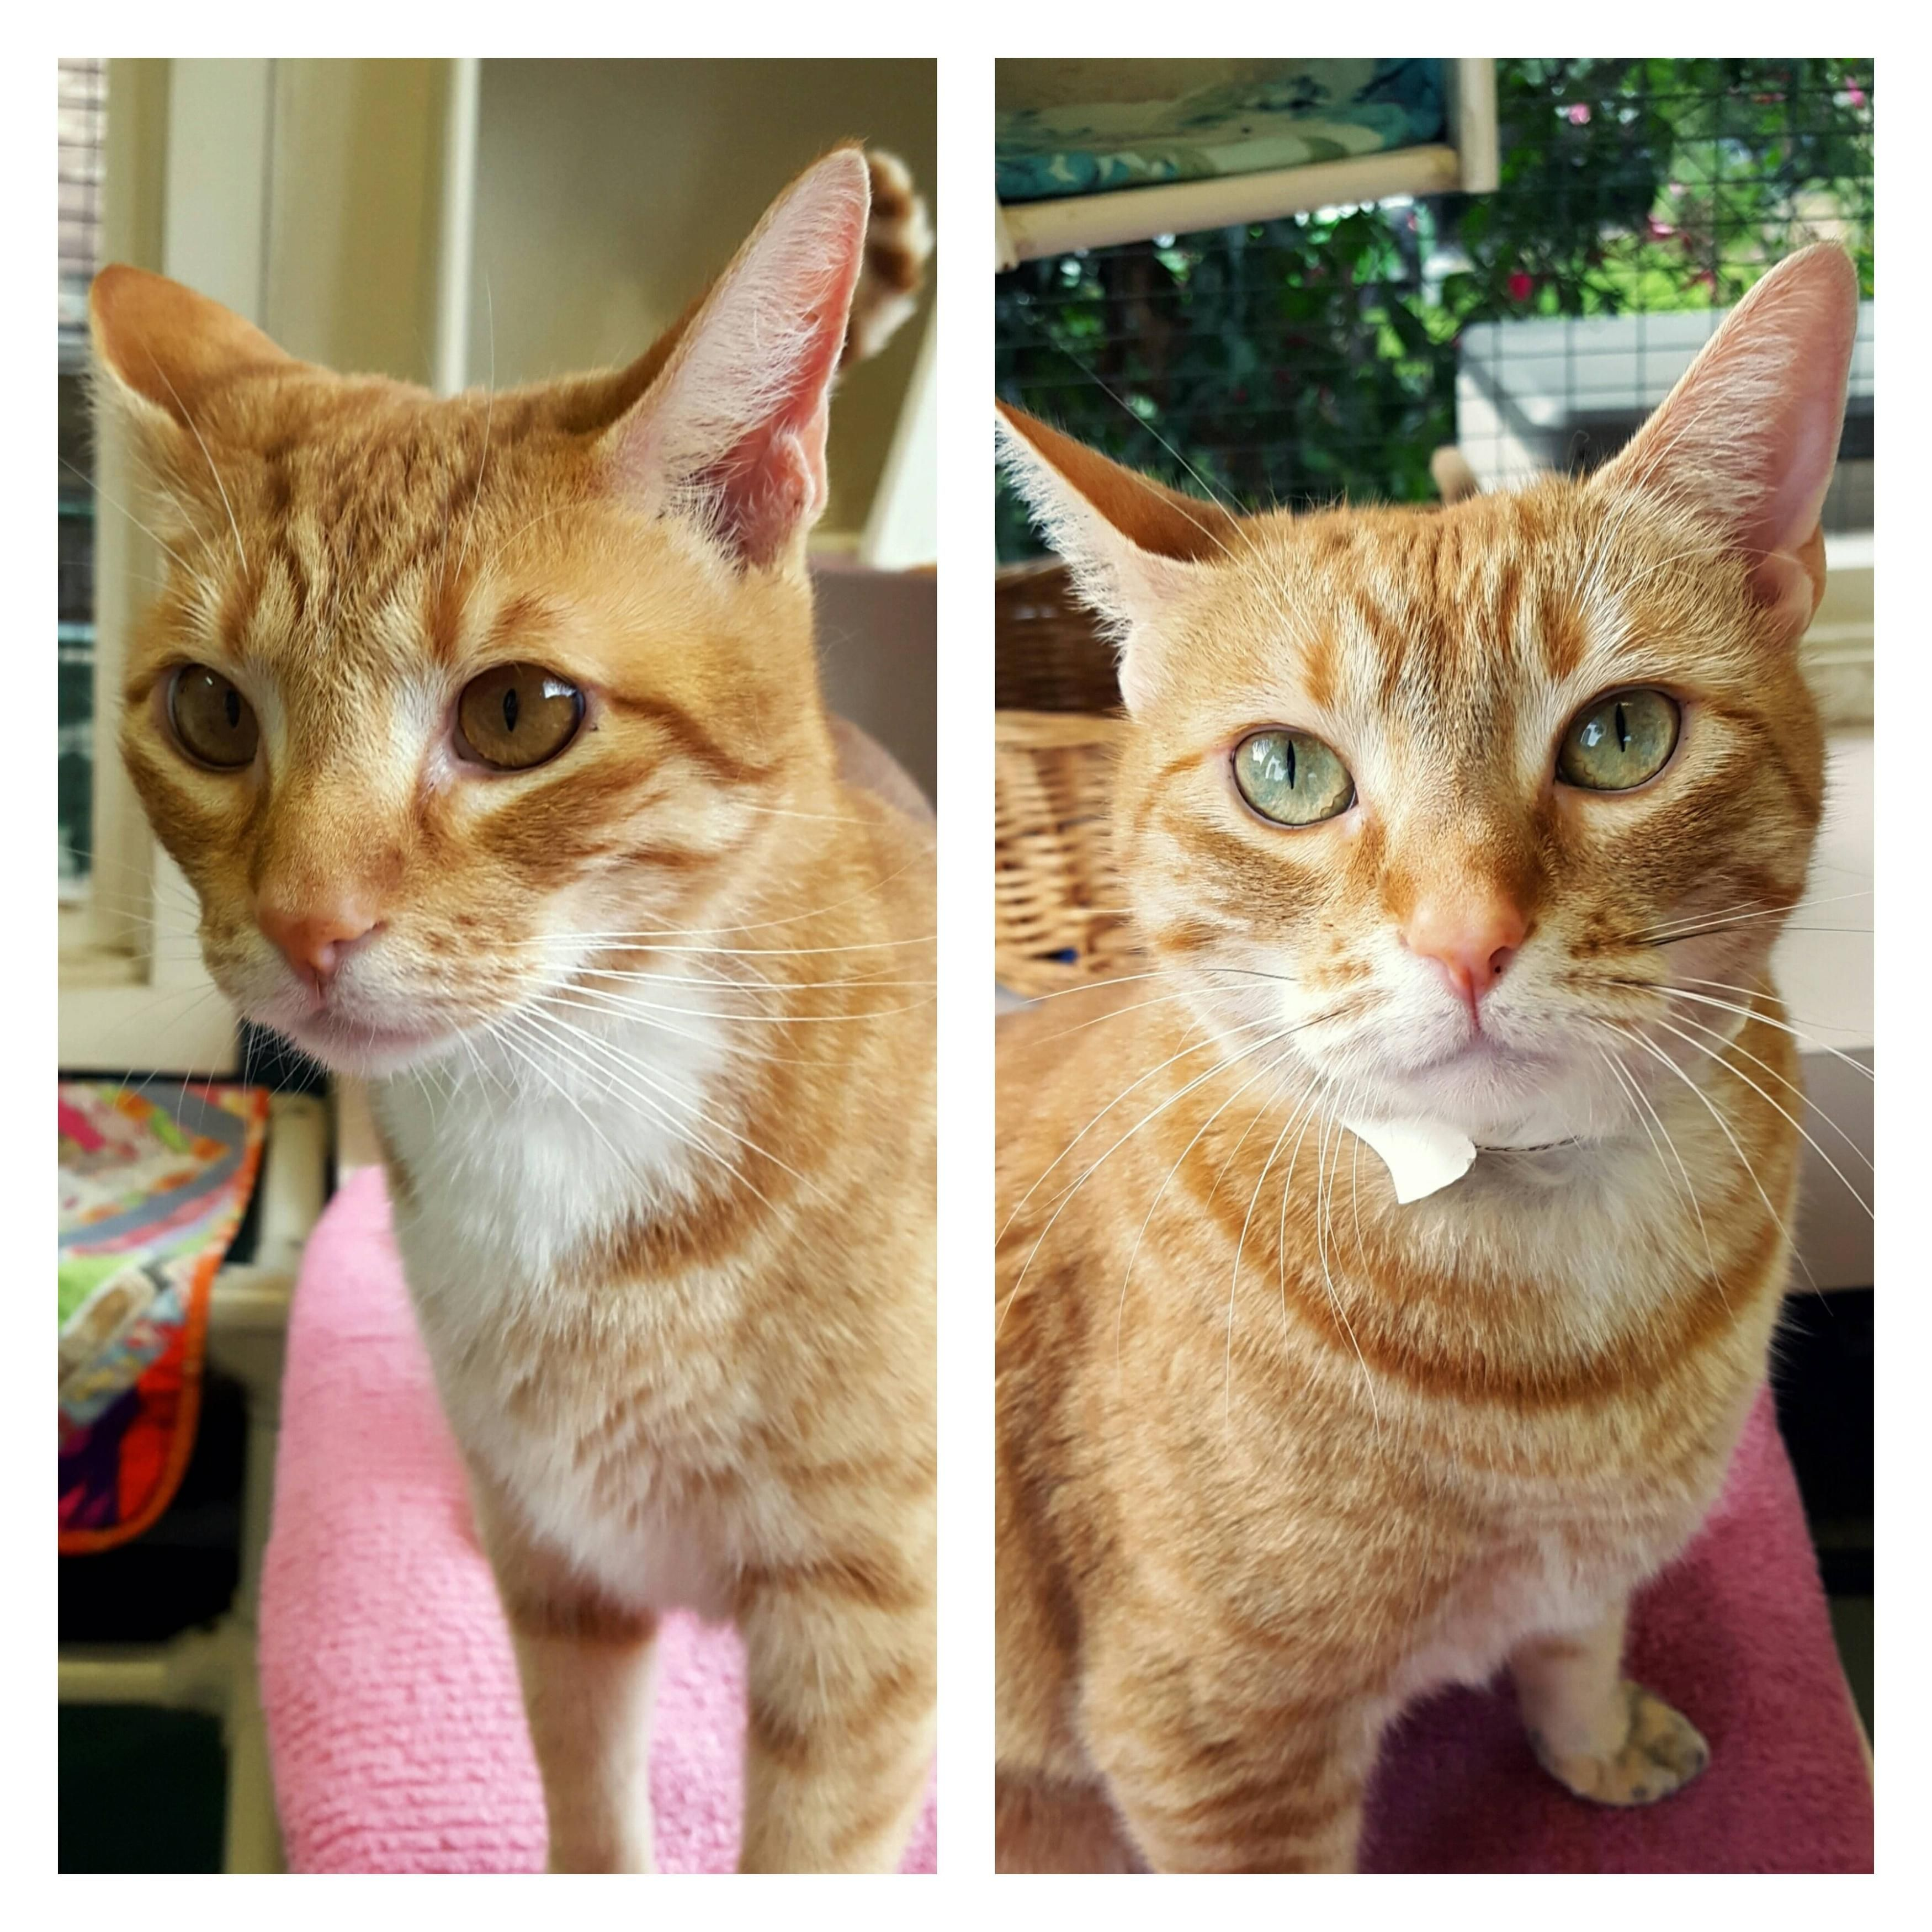 These handsome fellas are available for adoption at the